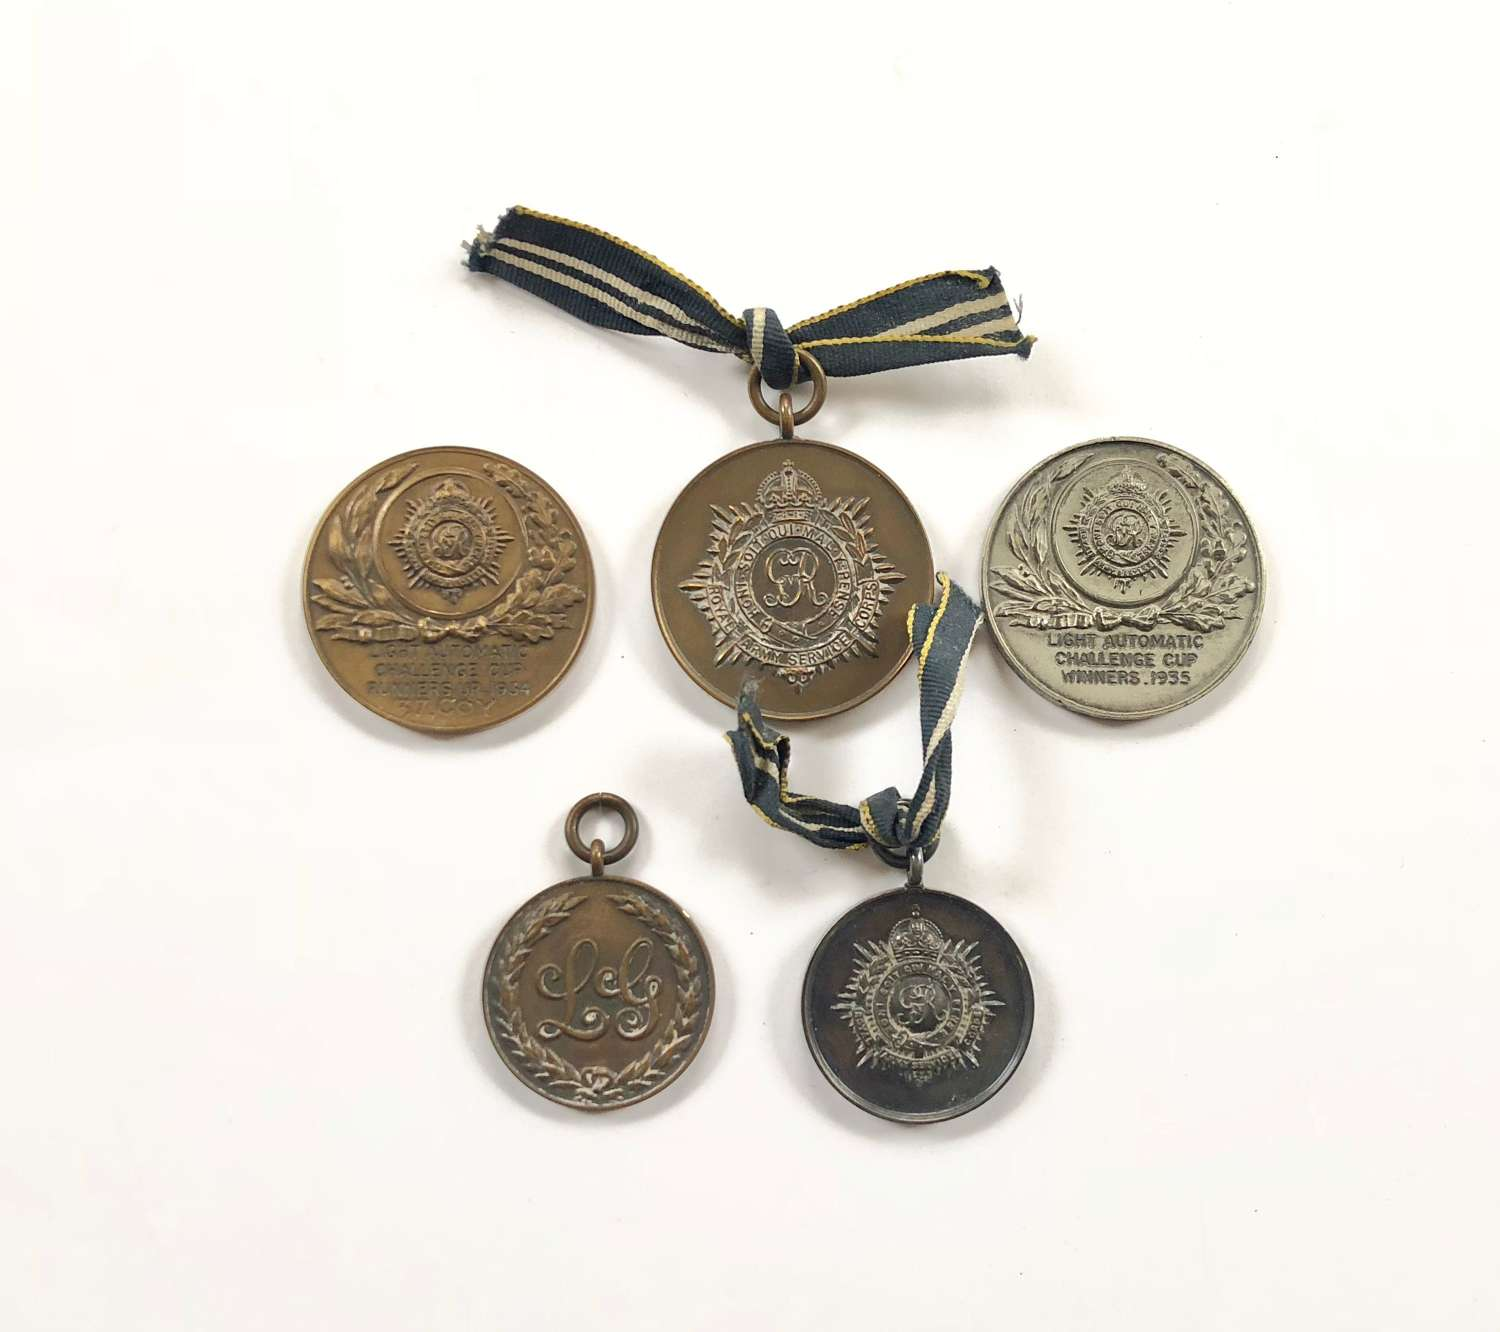 Selection of 1930's RASC Regimental Shooting Medals.